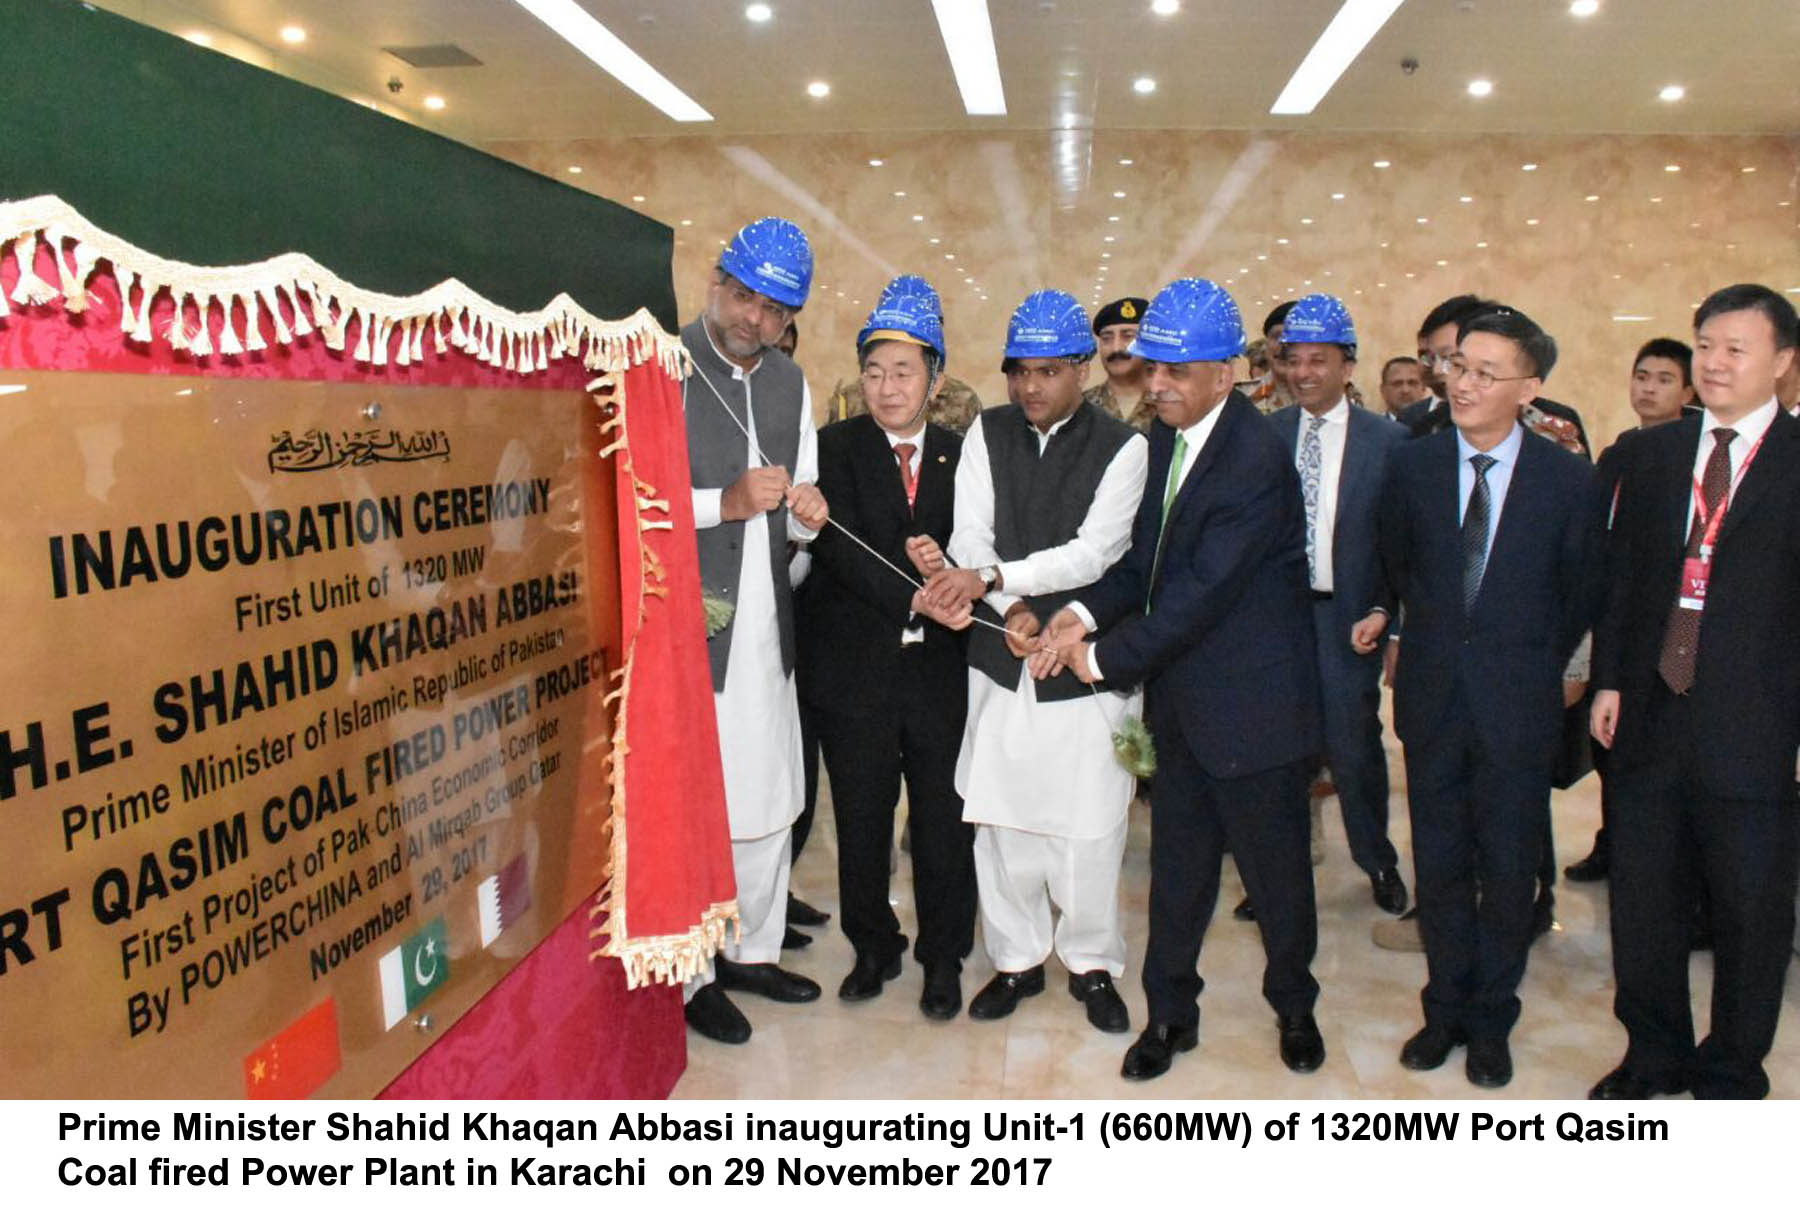 Inauguration of  Unit-1(660MW) of 1320MW Port Qasim Power Project  on 29 November 2017